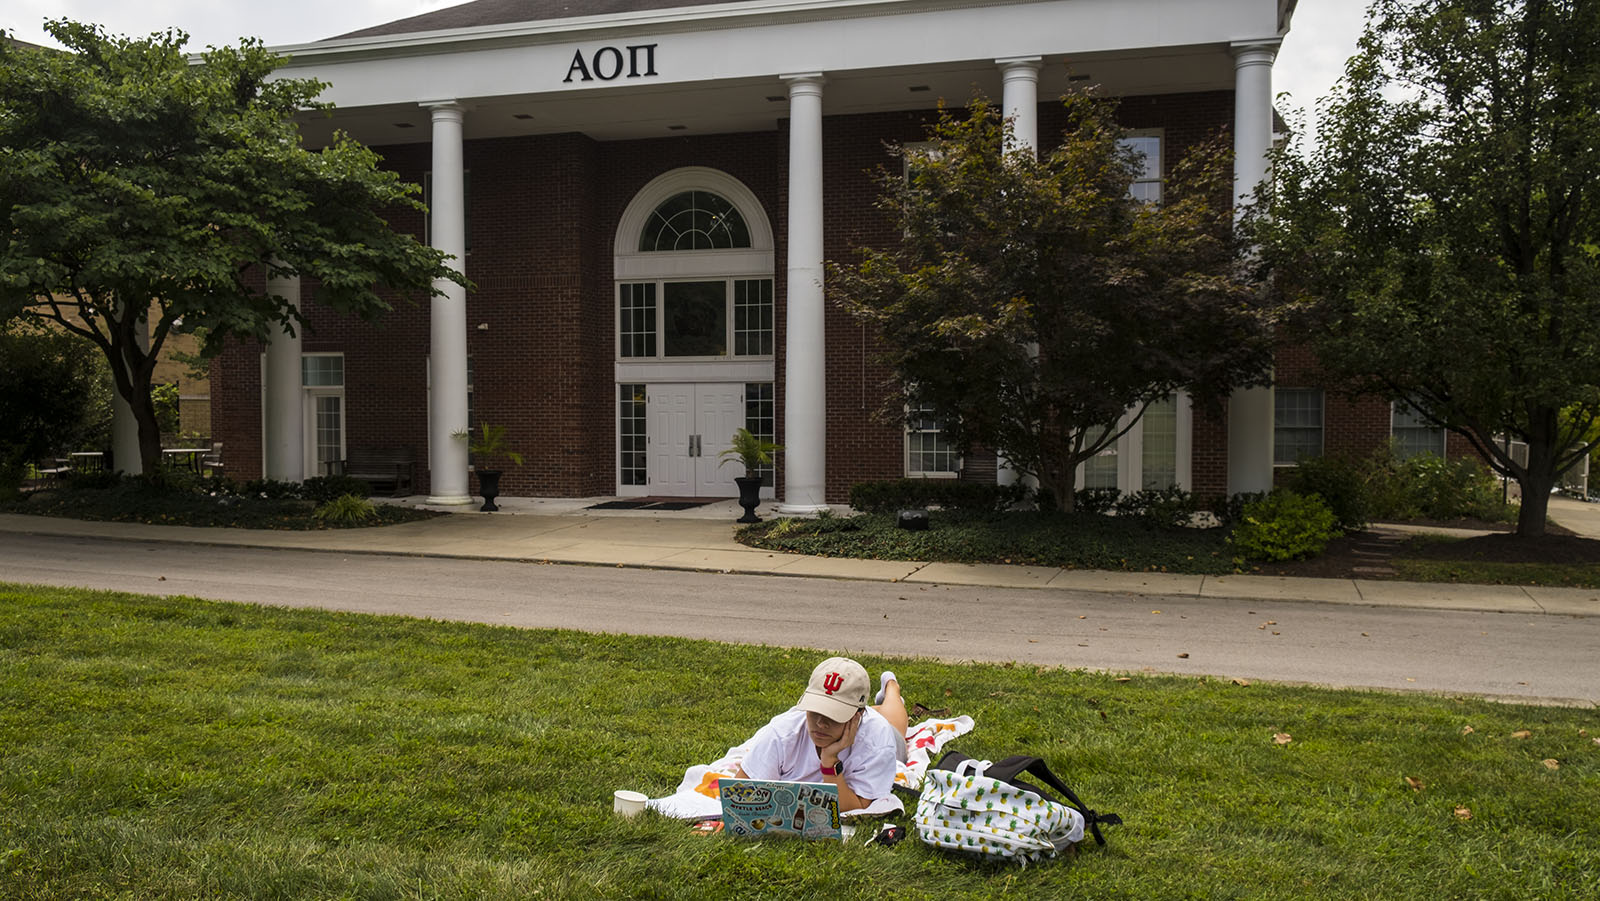 Lexie Brown, a business major at Indiana University, attends an online class on the lawn of her Alpha Omicron Pi sorority house to distance from other house residents. Over 30 Greek houses at Indiana University are currently under quarantine.